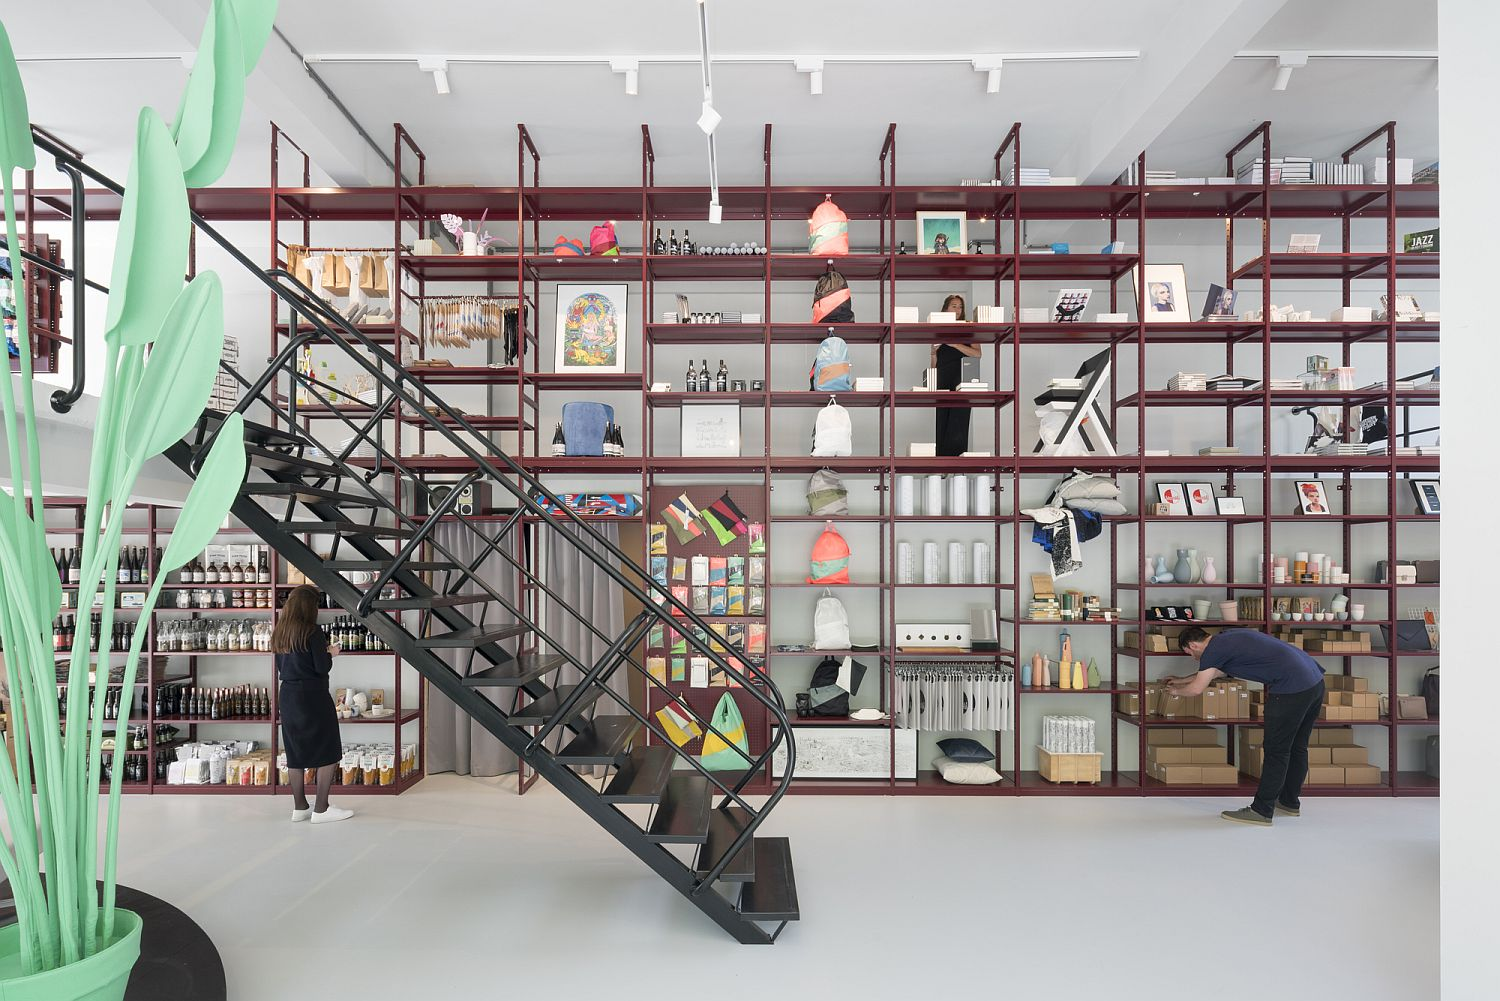 Industrial style sheling in red for the innovative Groos store Revitalized Interior of Groos: Creative Display Set in an Open Floor Space